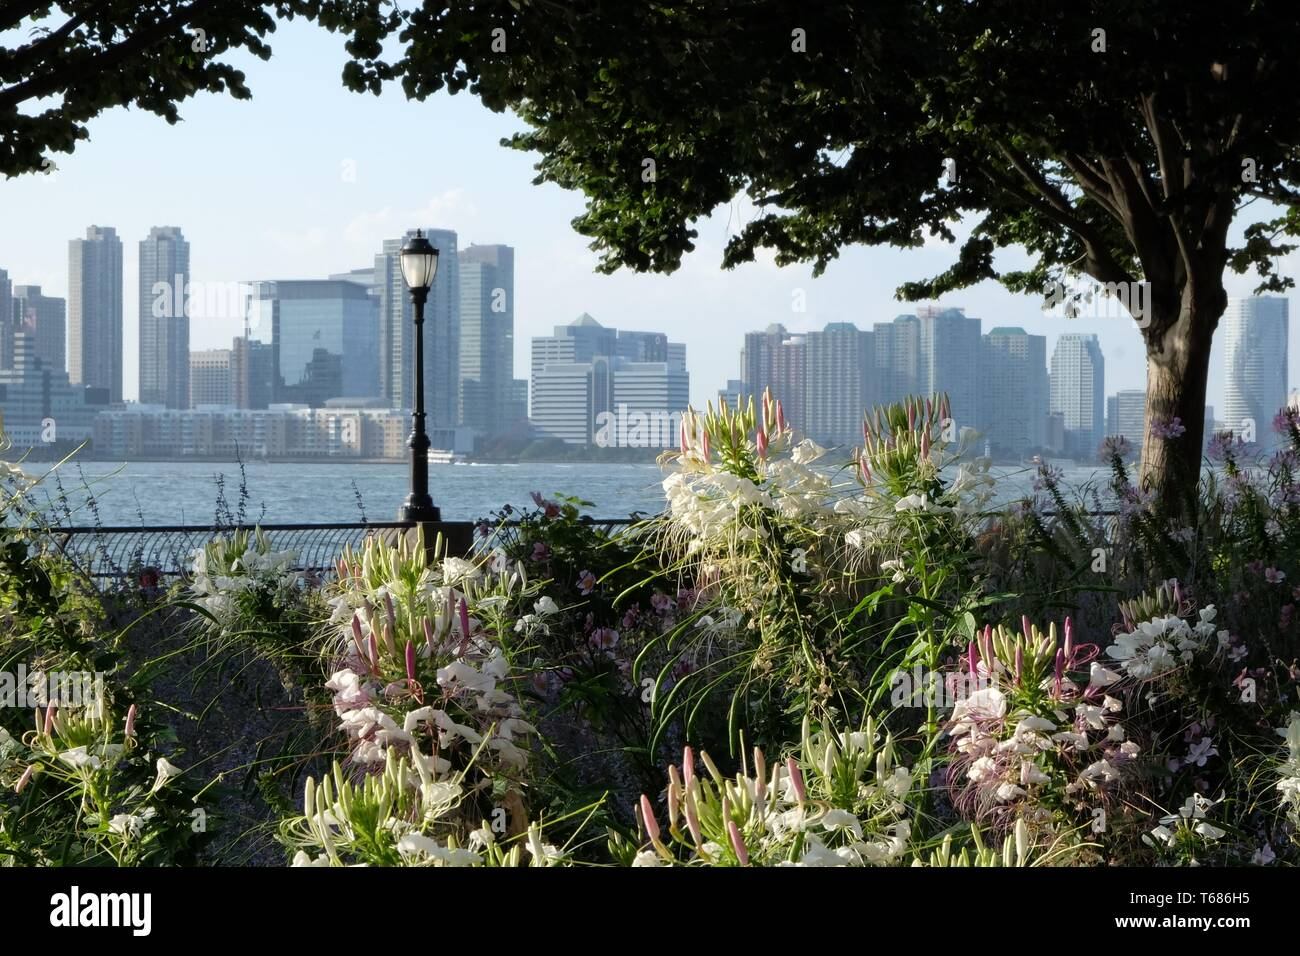 A Picture of Battery Park in Lower Manhattan, NYC Stock Photo